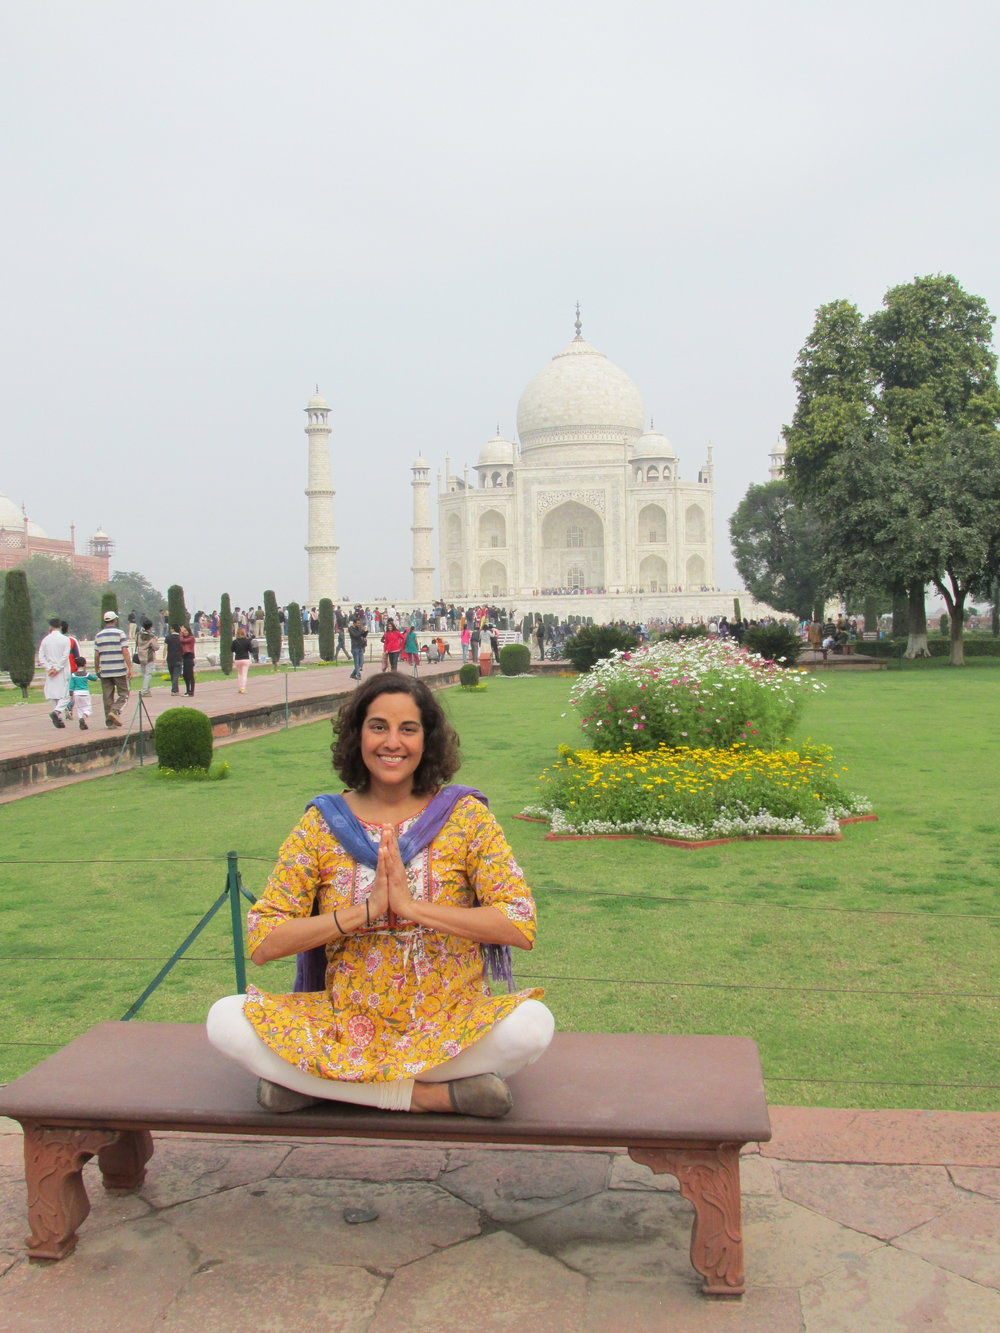 Lisa Amani in India at The Taj Mahal